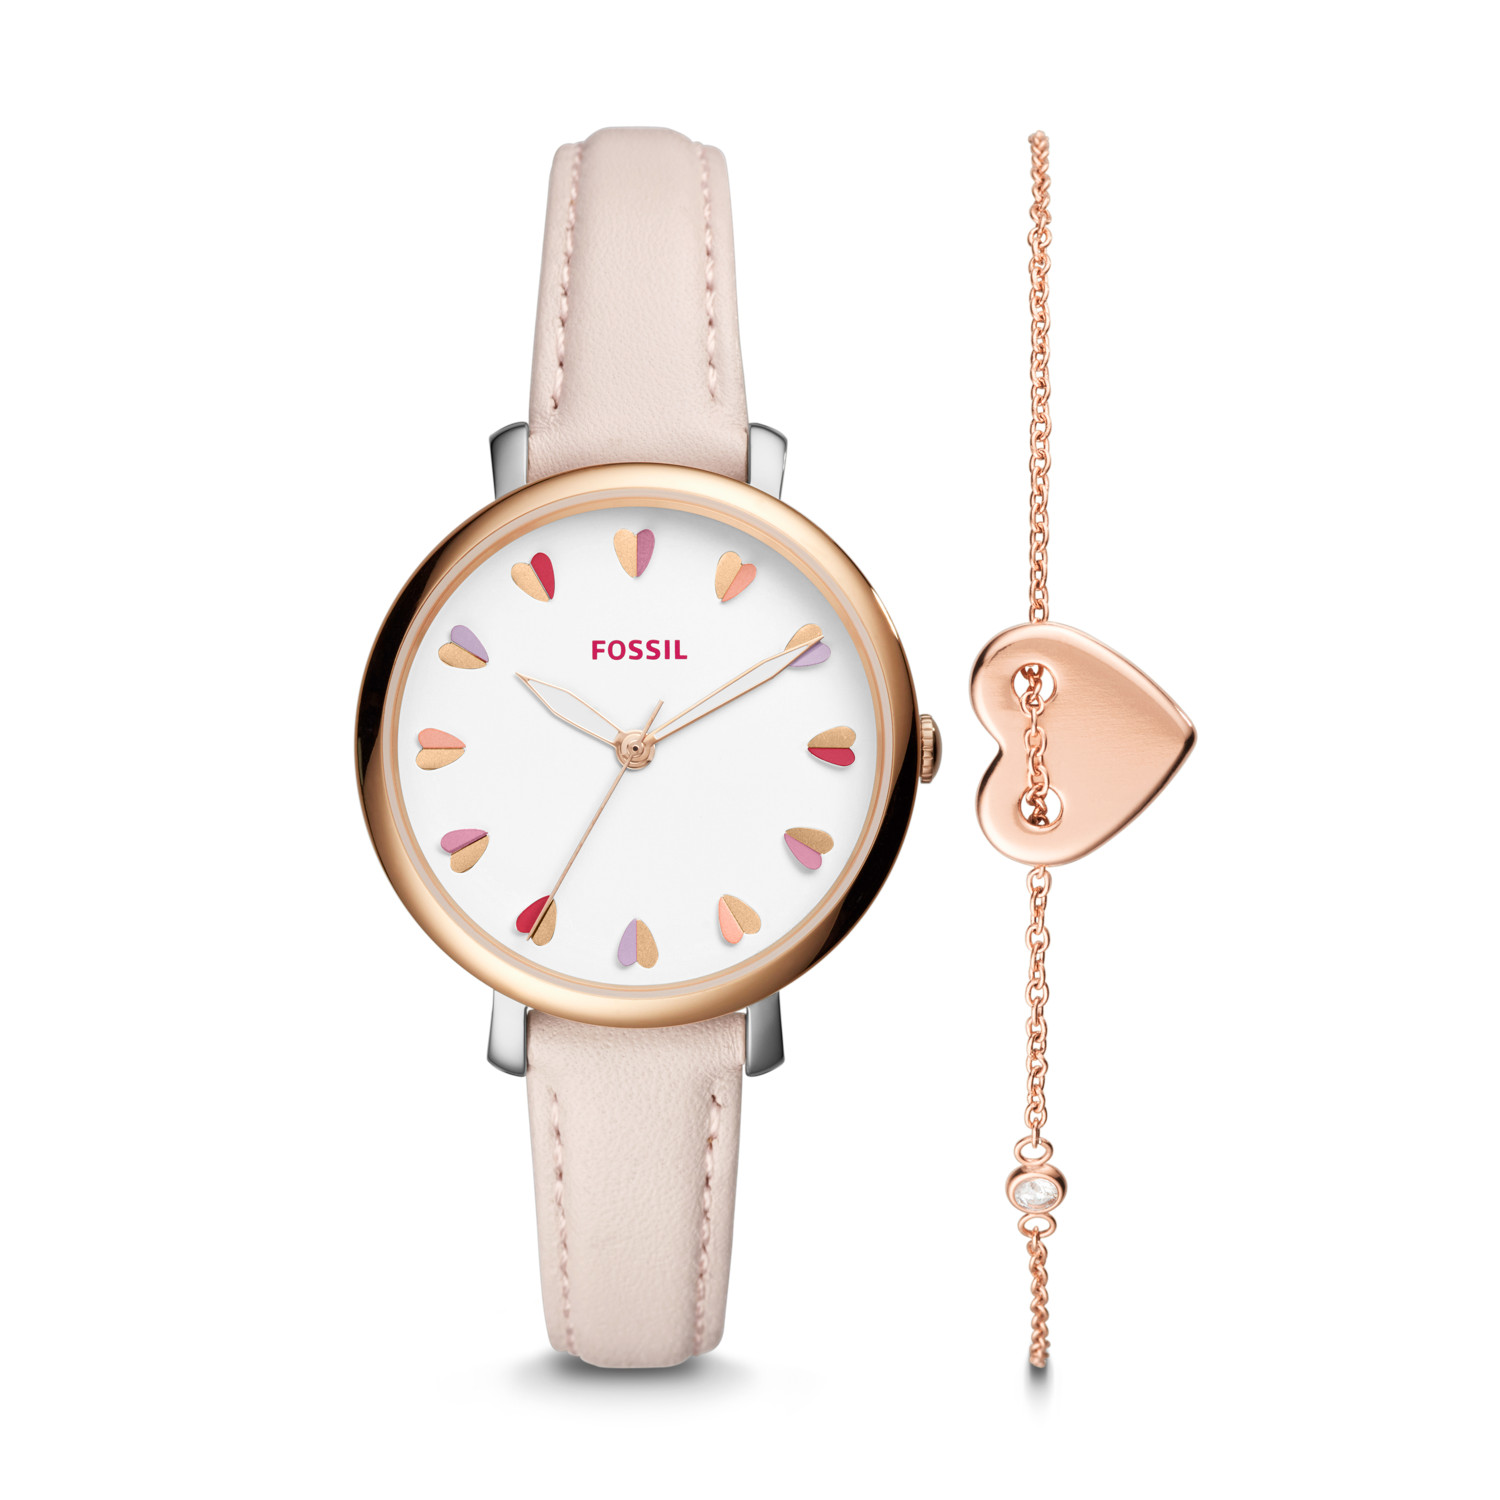 Kết quả hình ảnh cho Fossil Jacqueline Three-Hand Pastel Pink Leather Watch and Jewelry Box Set